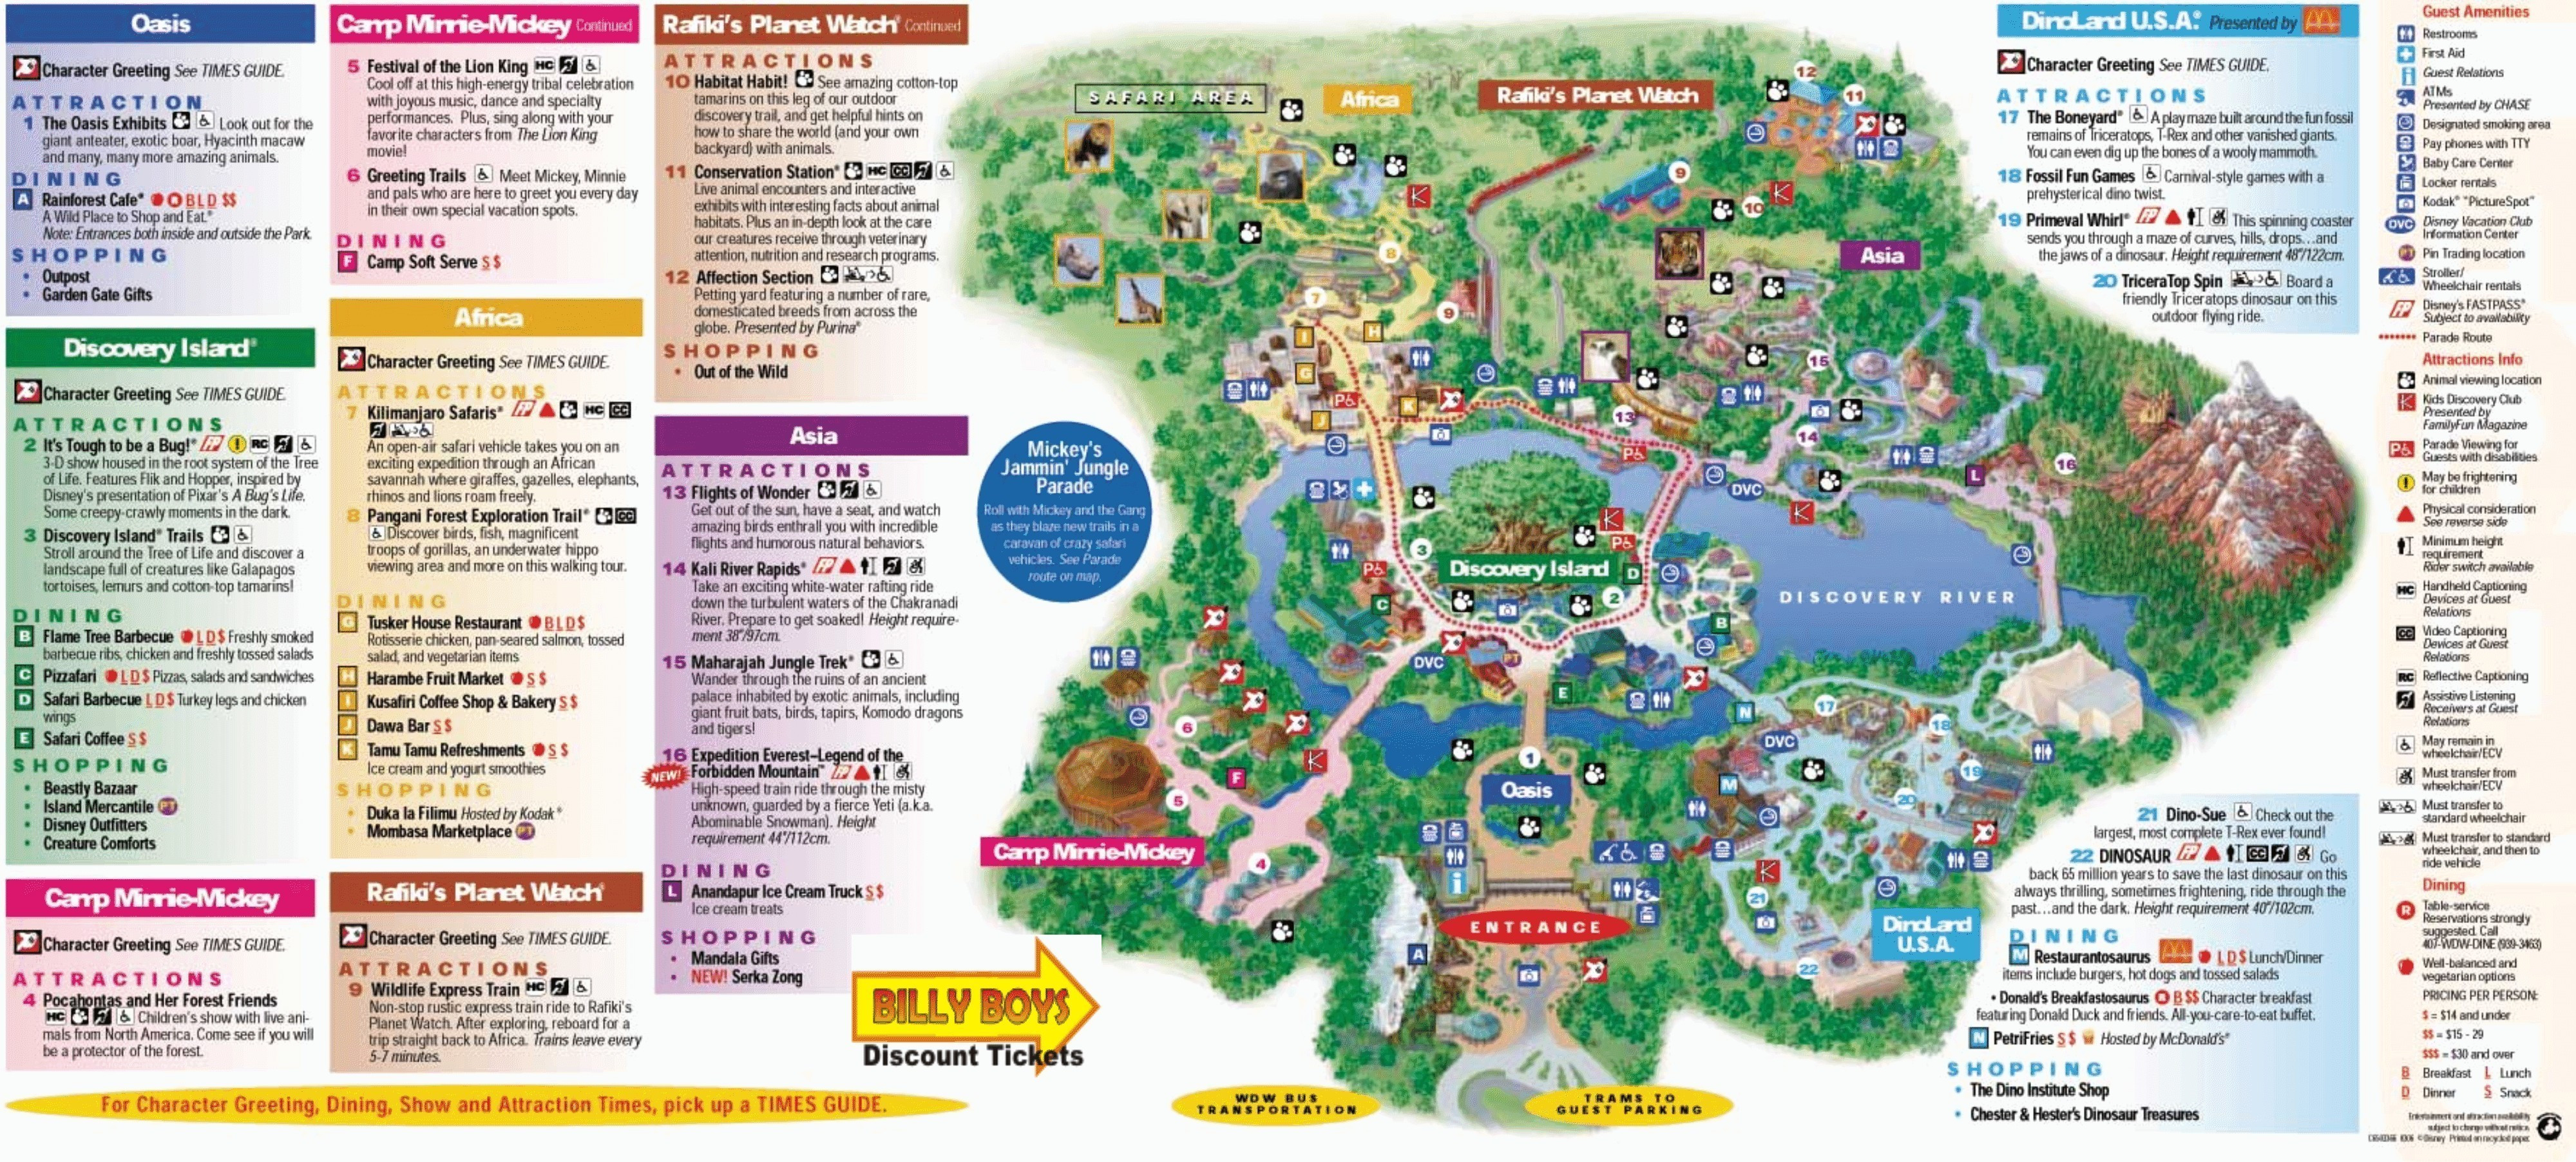 Printable Map Animal Kingdom New Toys R Us Google Map Best Print Disney Maps World Magic Kingdom